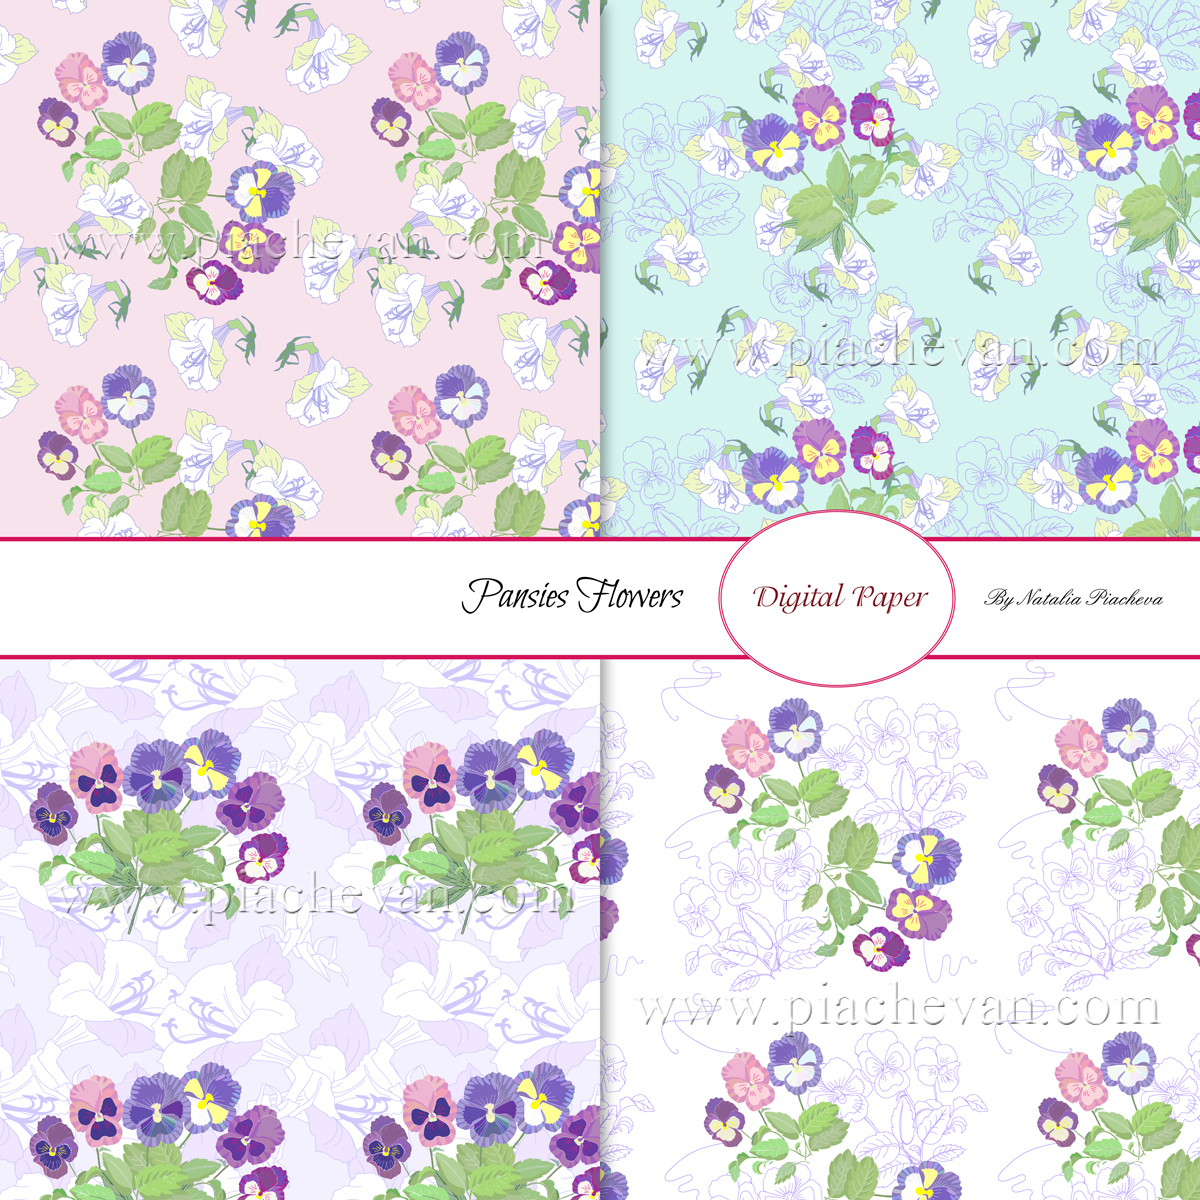 Digital paper with Pansies Flowers example image 2